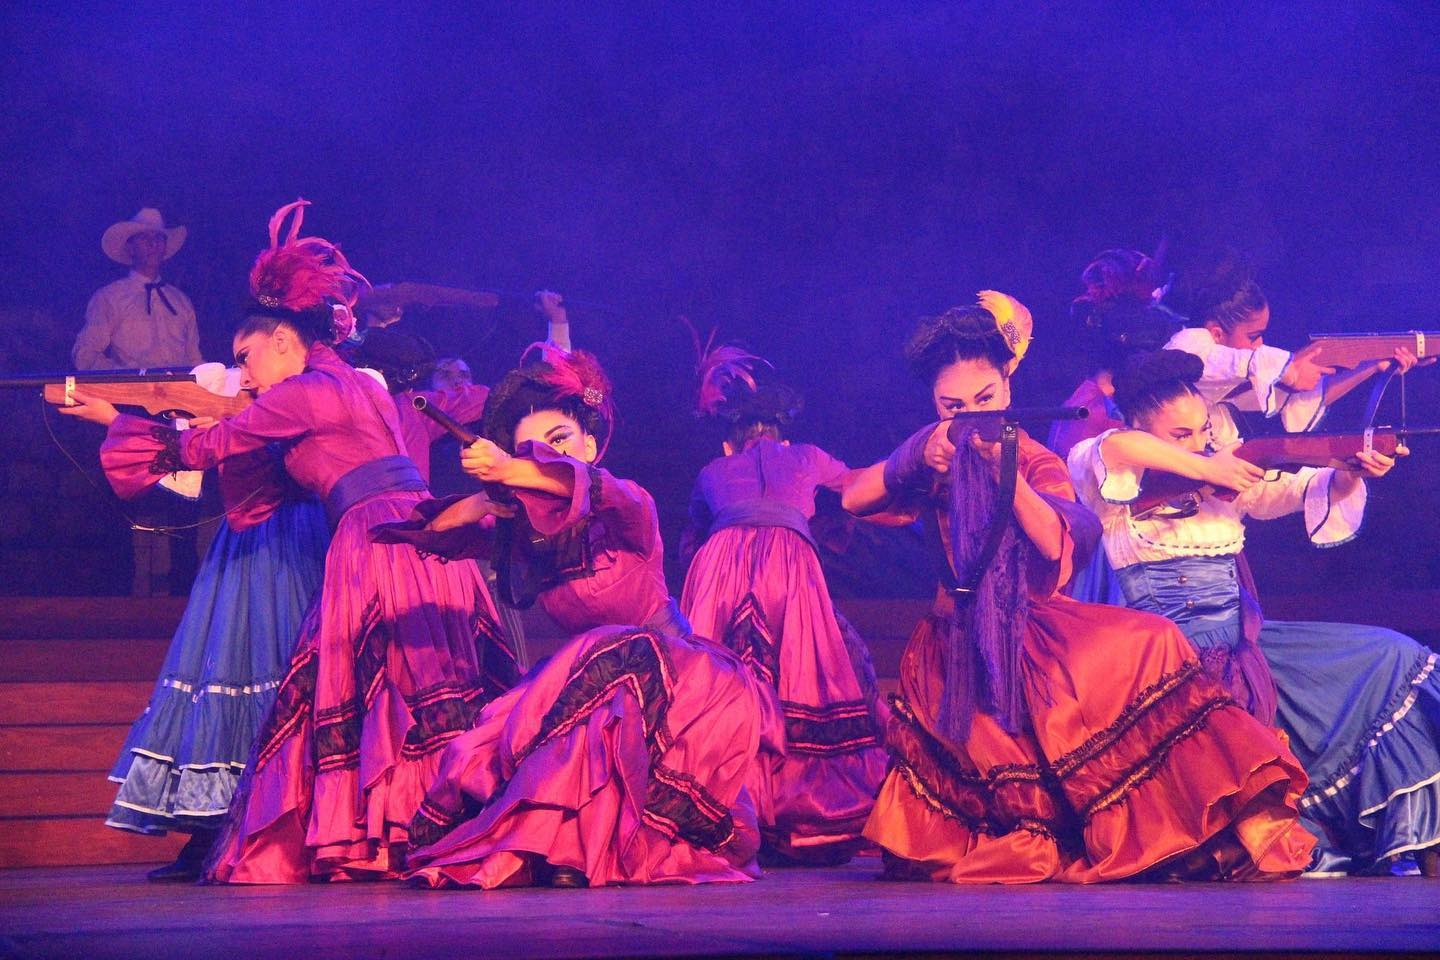 Pacifico Dance Company pays tribute to the strong women of the Mexican Revolution. Female dancers are shown armed and ready to defend their country and causes | Courtesy of Pacifico Dance Company